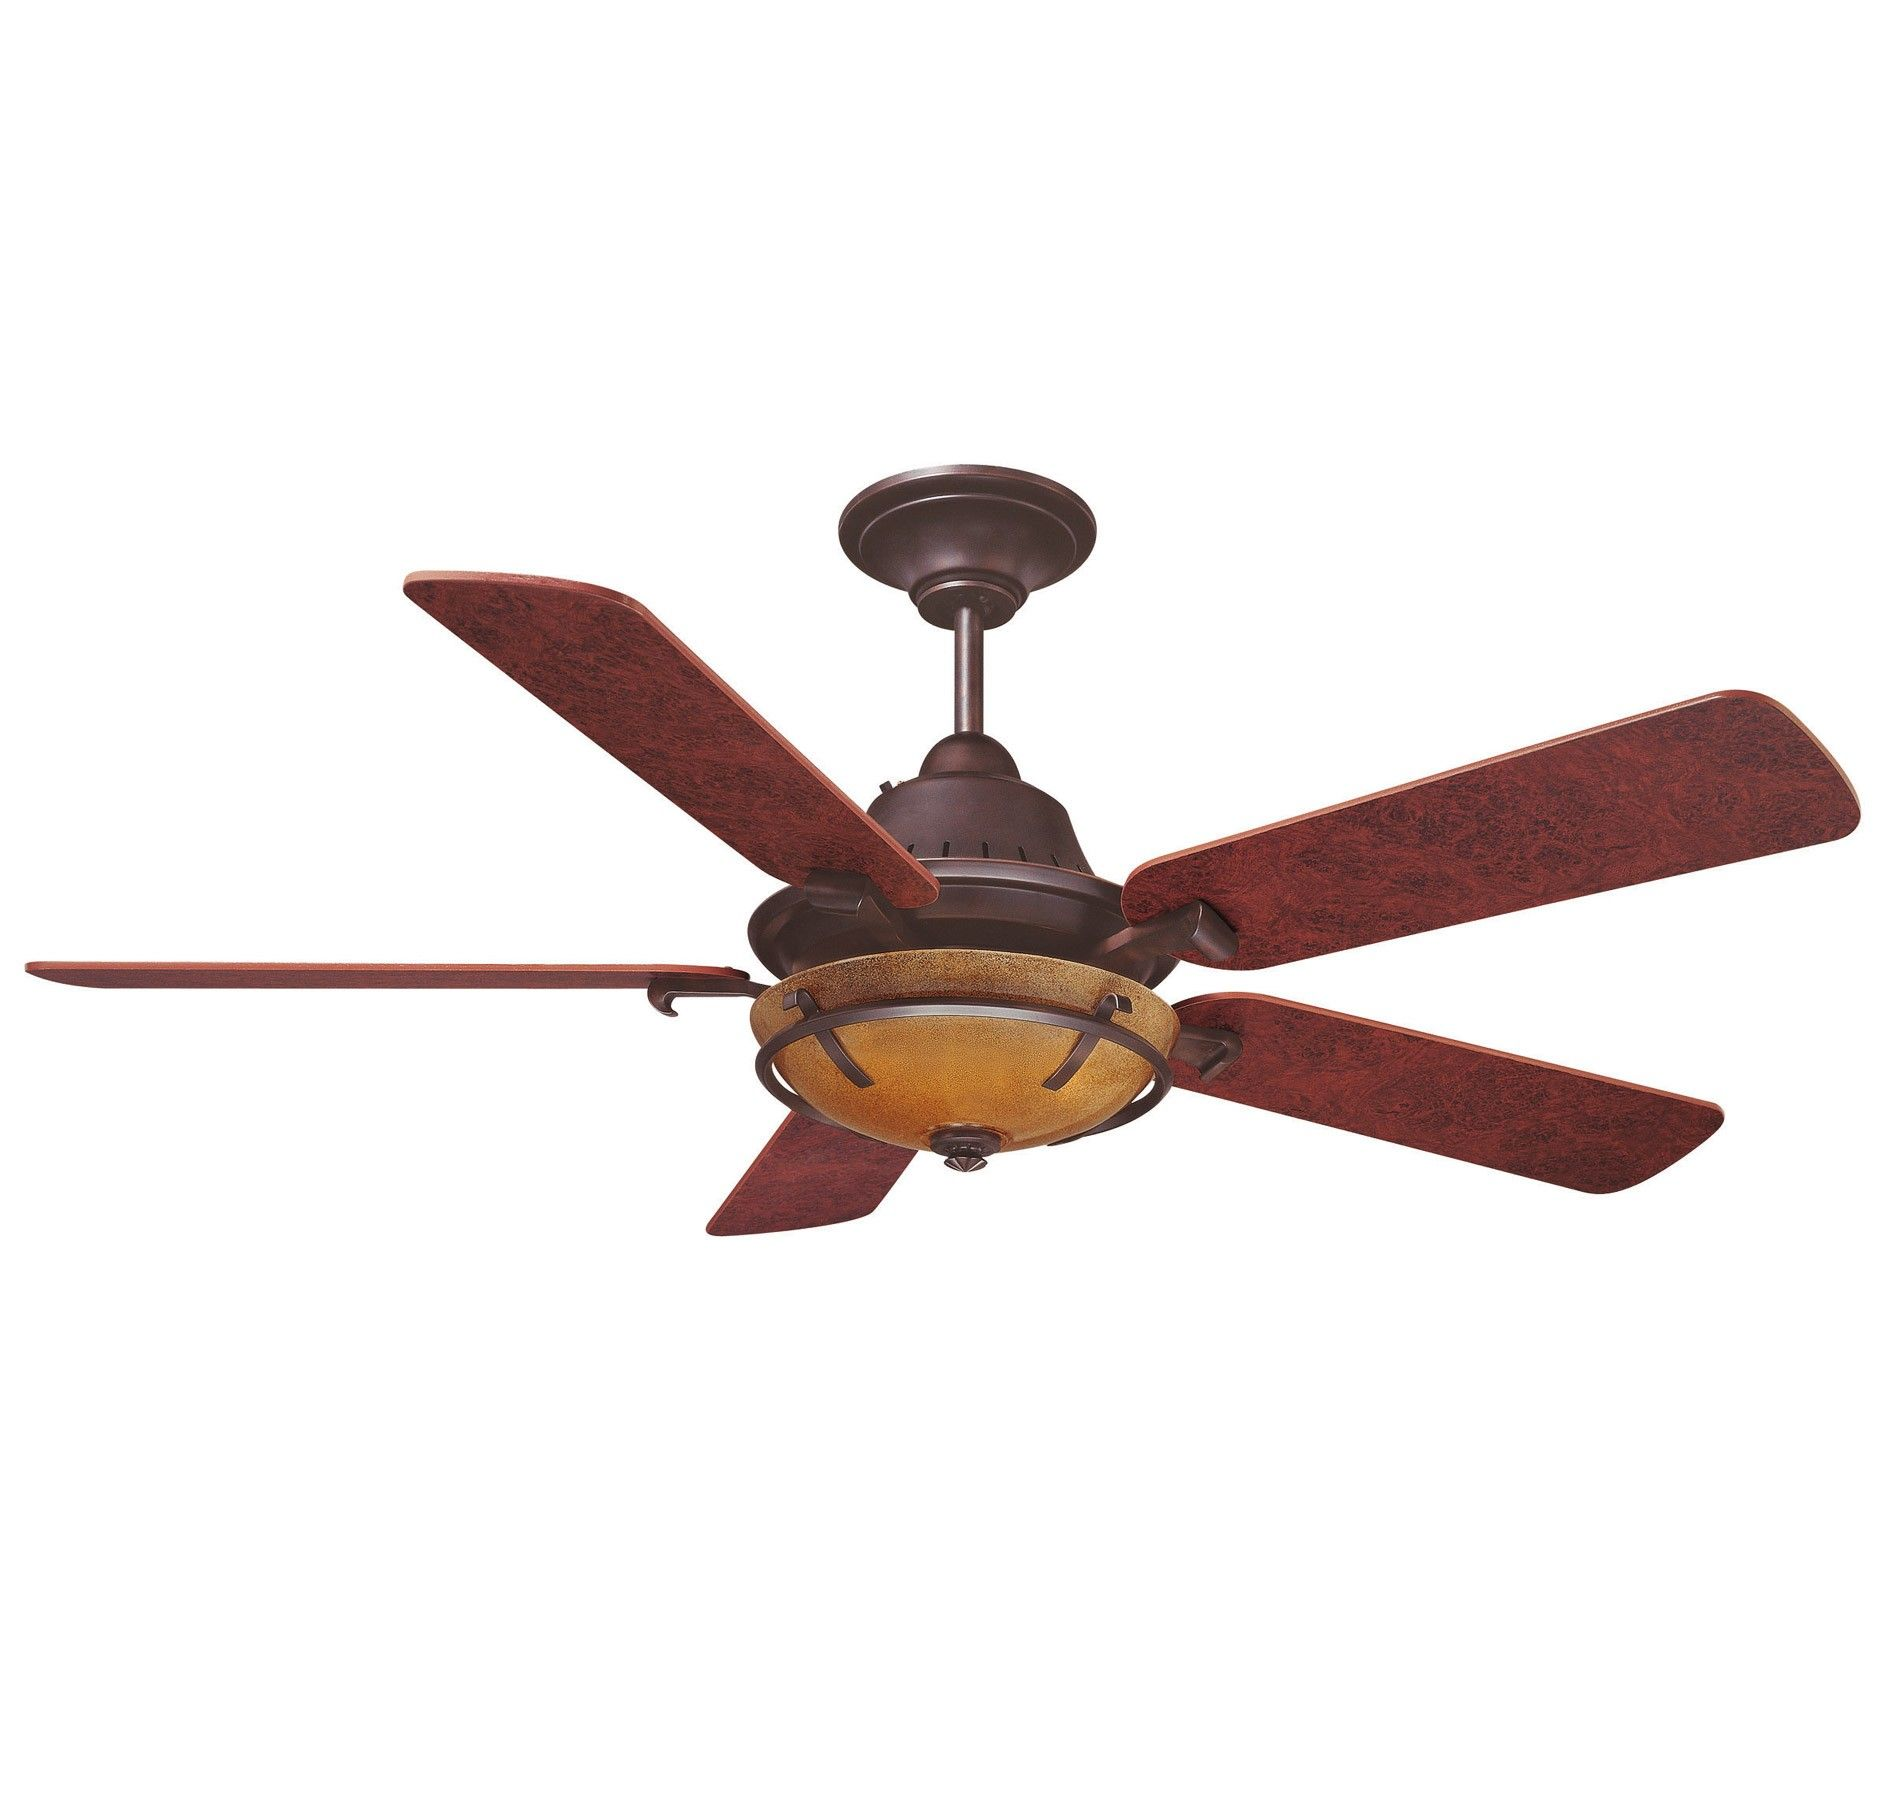 Savoy House 52p 620 5bc 13 Big Canoe 52 Indoor Ceiling Fan In Ceiling Fans Indoor Ceiling Fans All In One Fans Pro Ceiling Fan House Fan Bronze Ceiling Fan